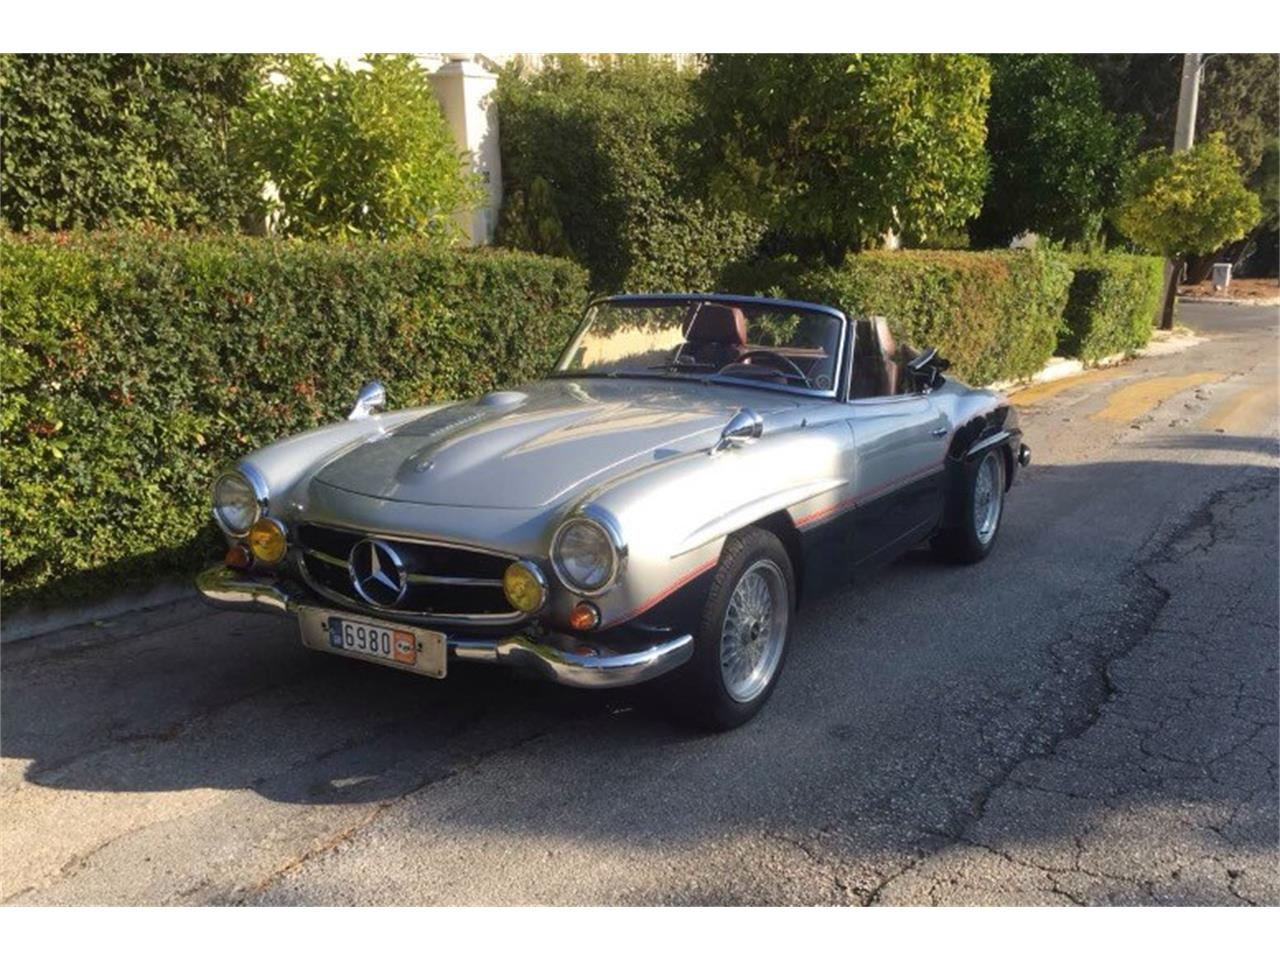 For Sale: 1962 Mercedes Benz 190SL In Athens, Attica